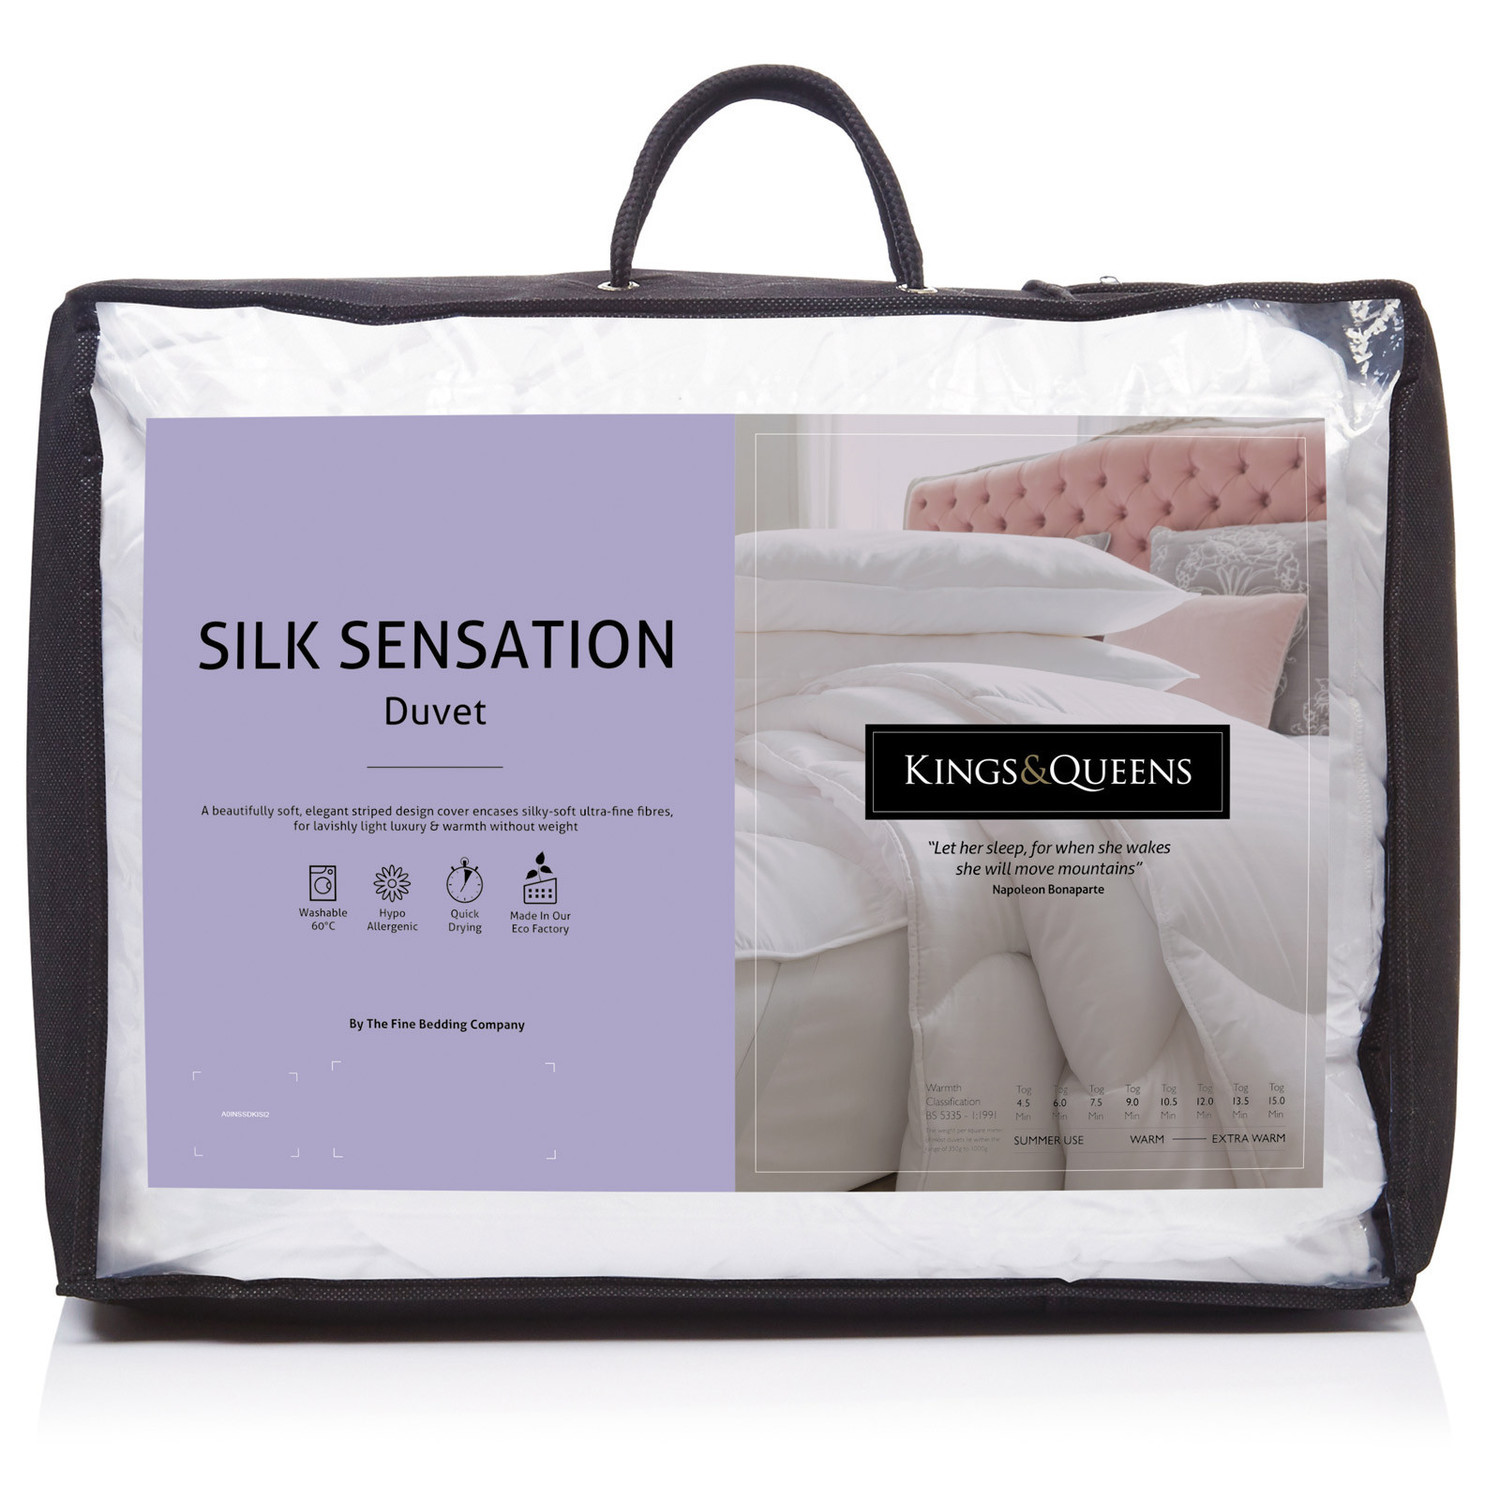 Fine Bedding Co Kings & Queens Silk Sensation Duvet